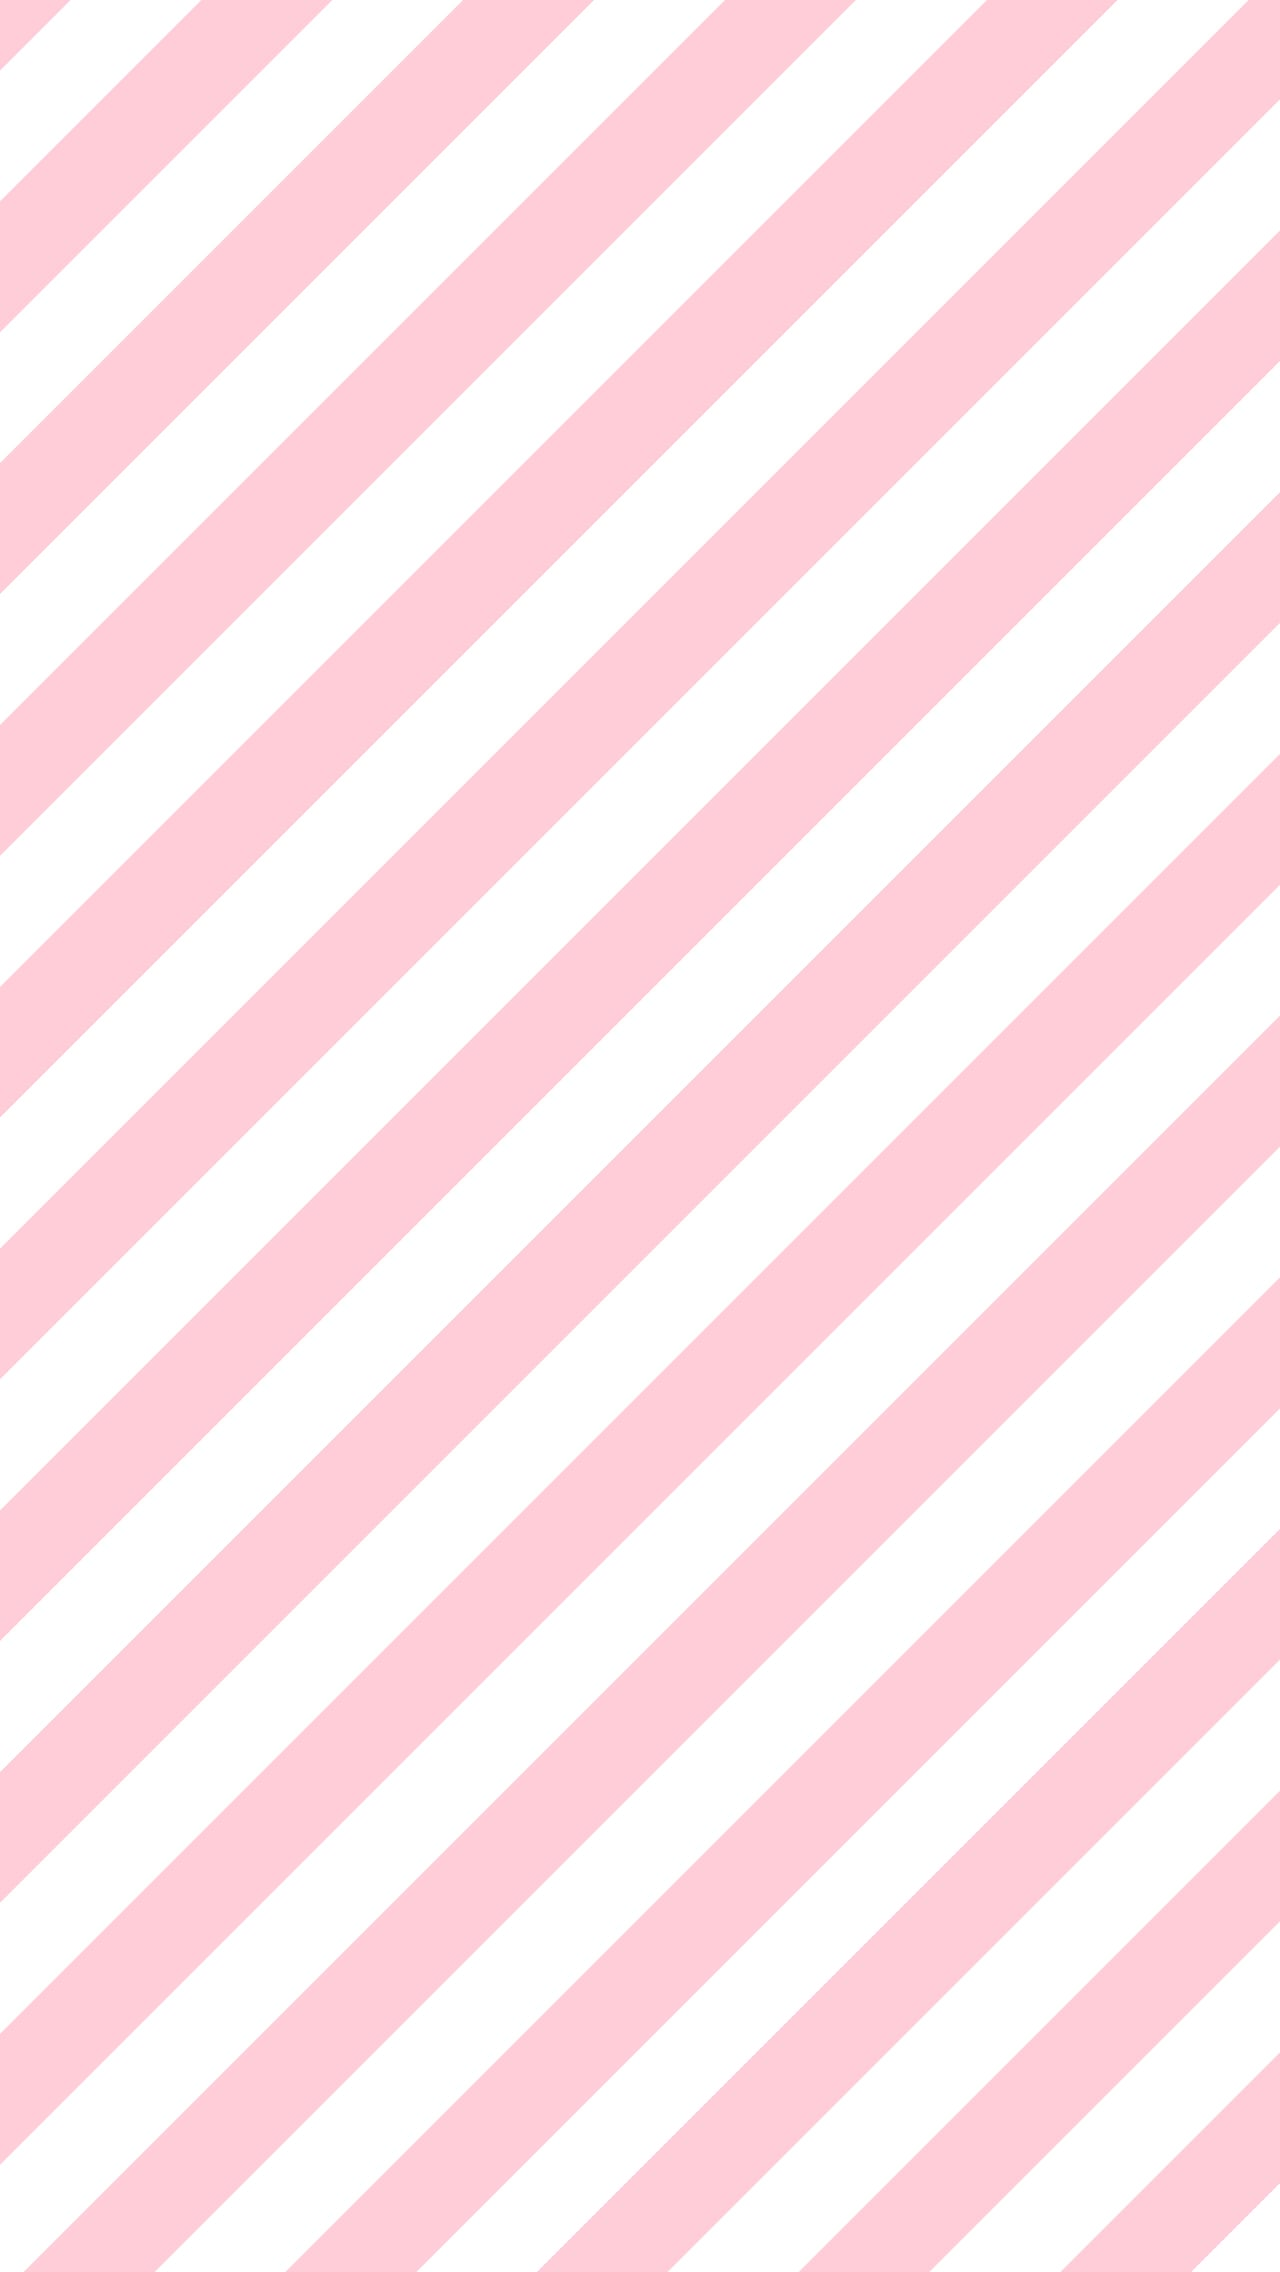 Light pink background rays in stripes from center